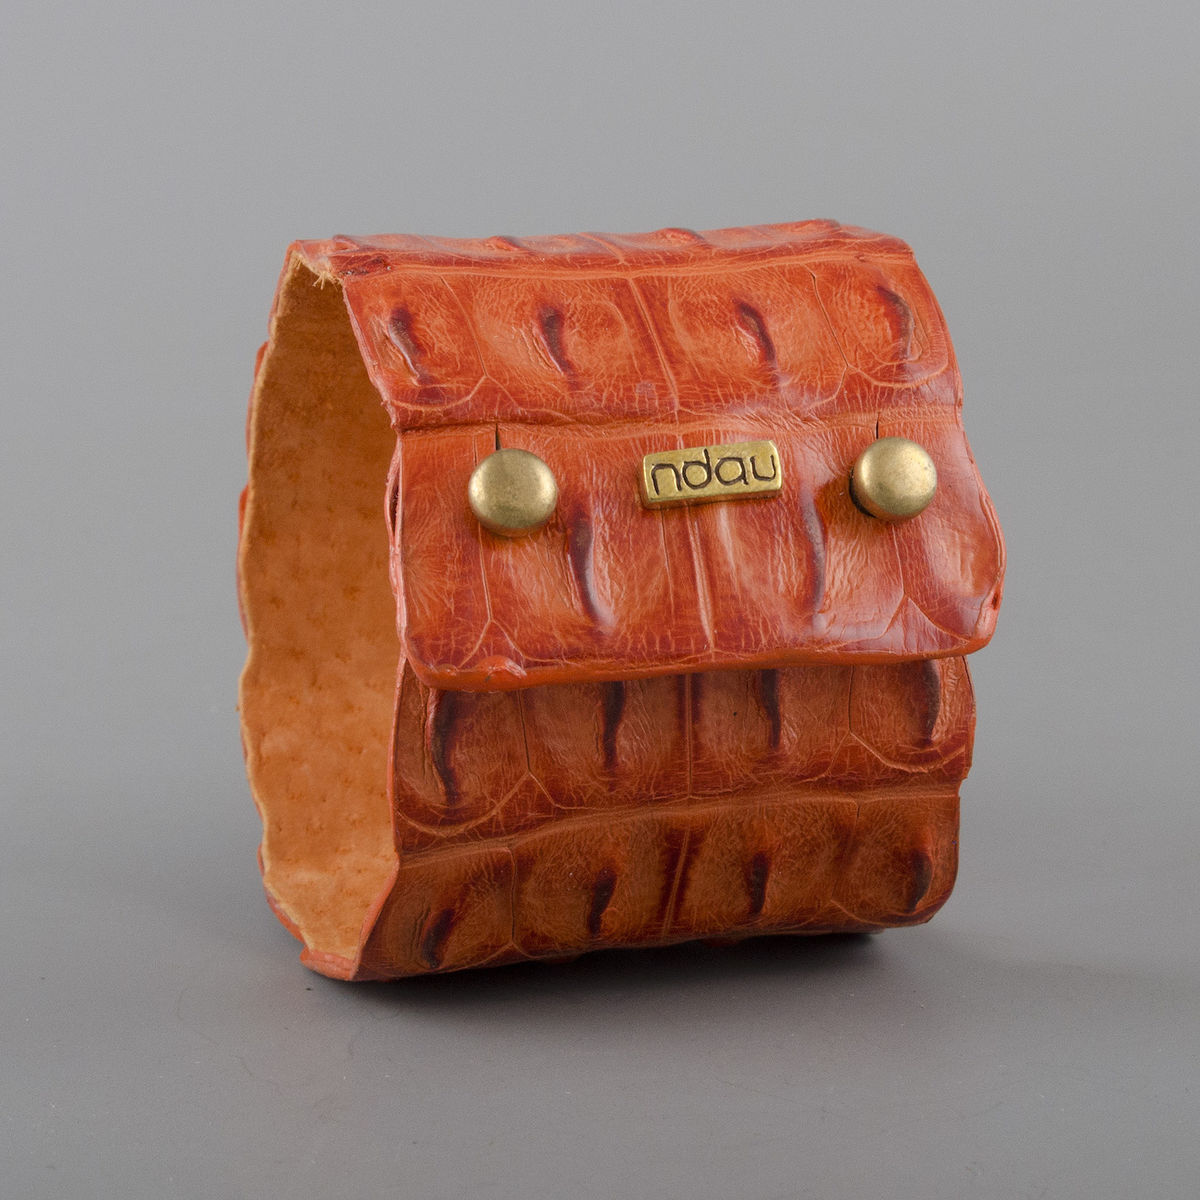 Crocodile Backskin Leather Rock Cuff with Double Holster in Mandarin - product image